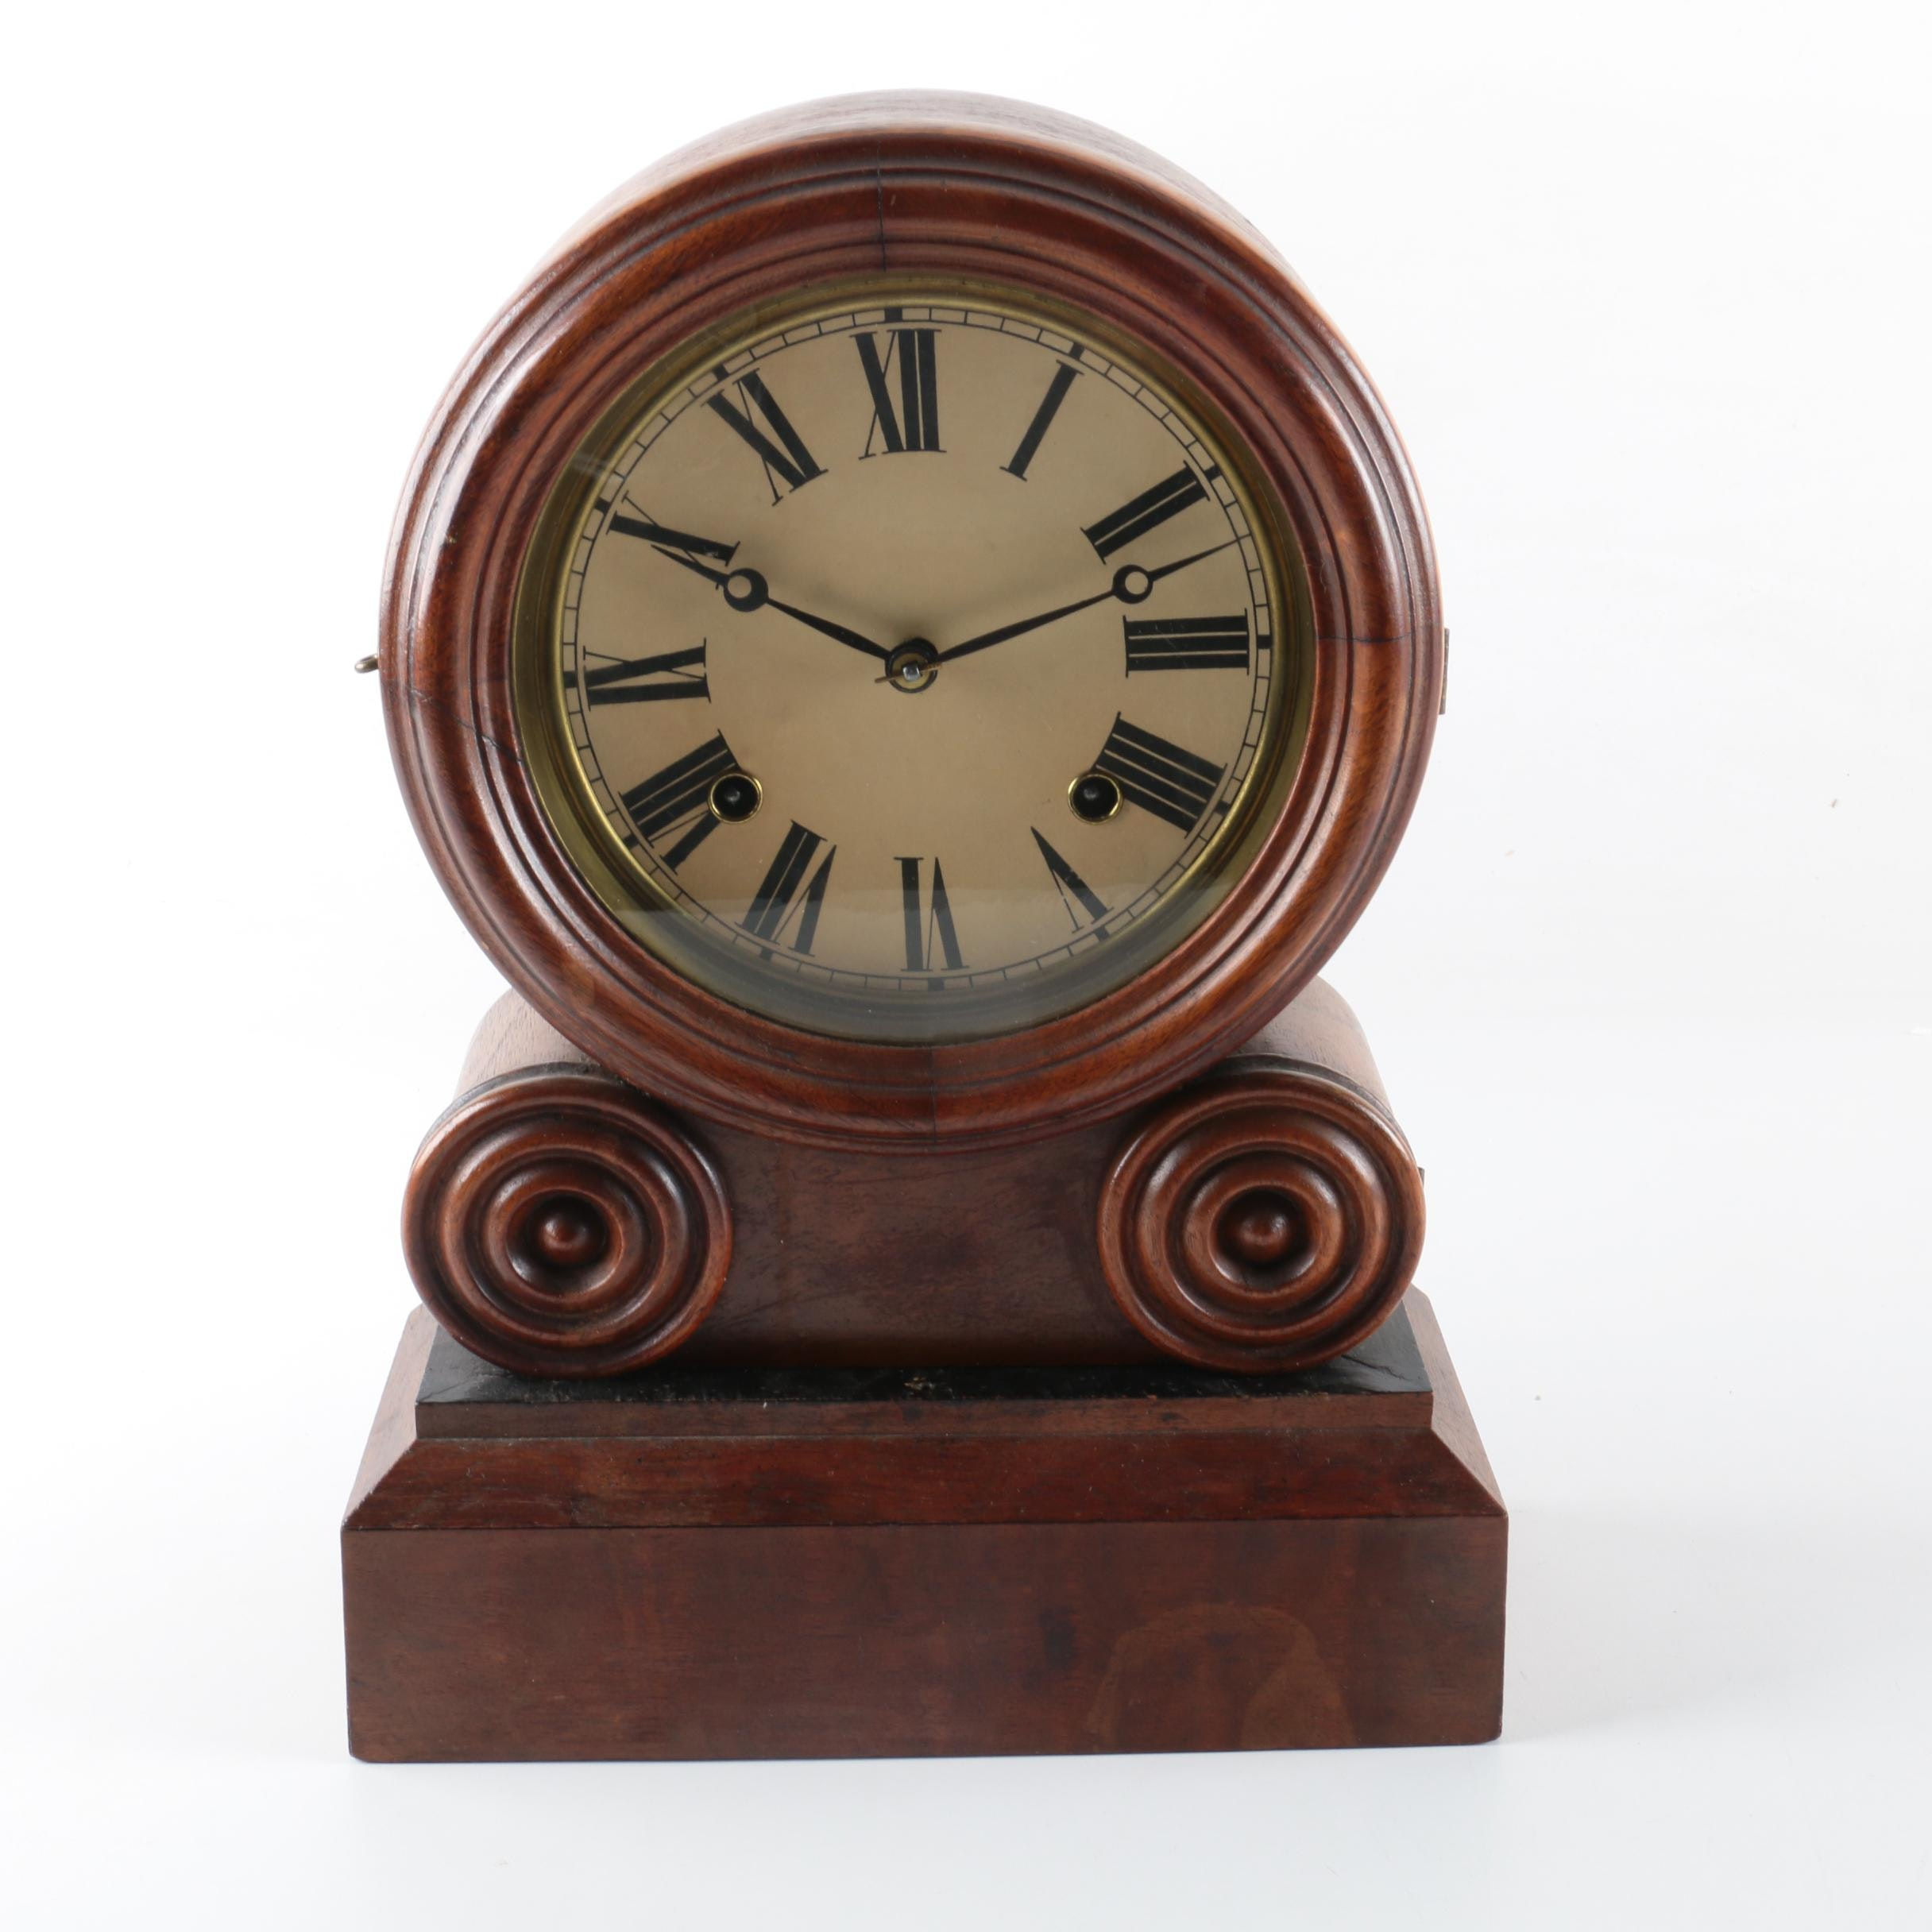 Vintage chiming mantel clocks